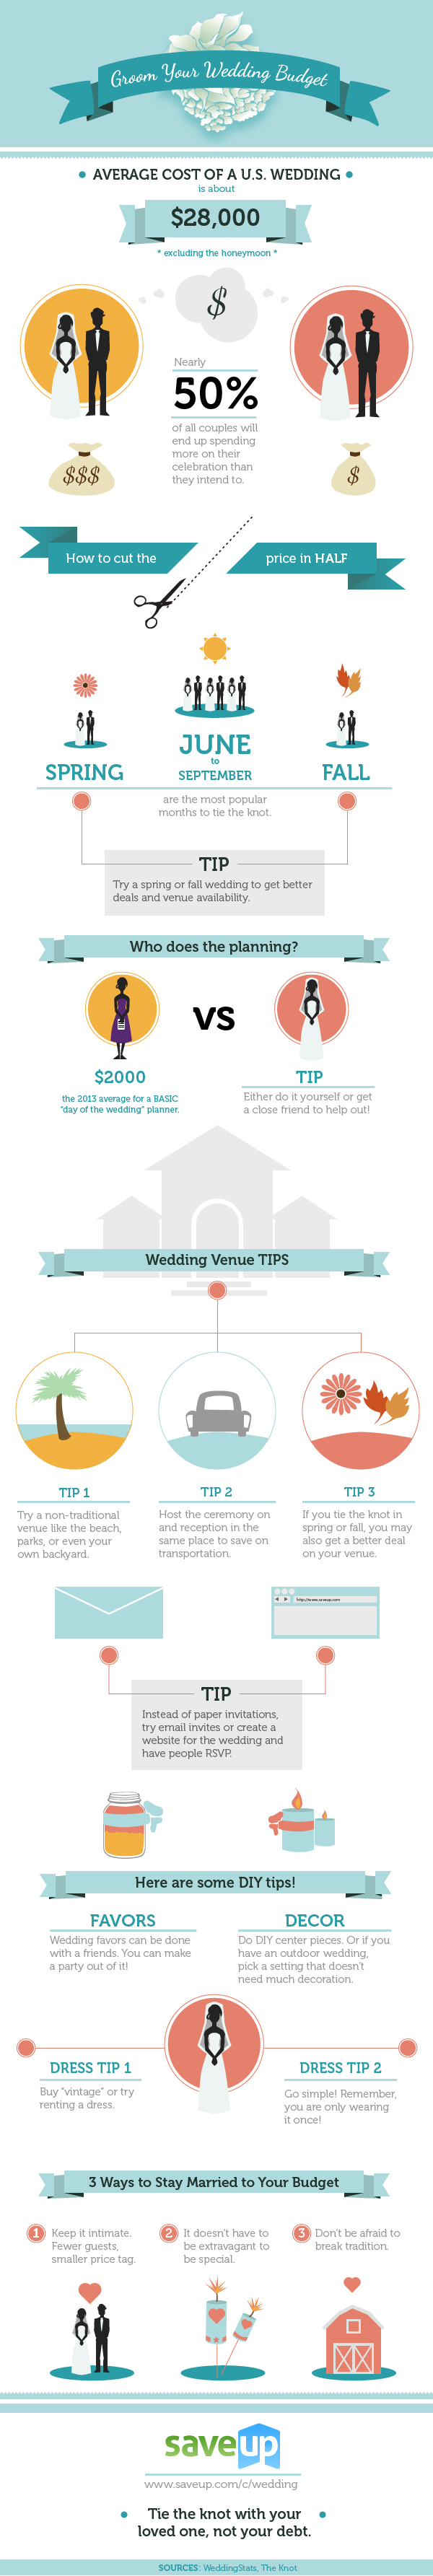 Saving Money on Modern Wedding